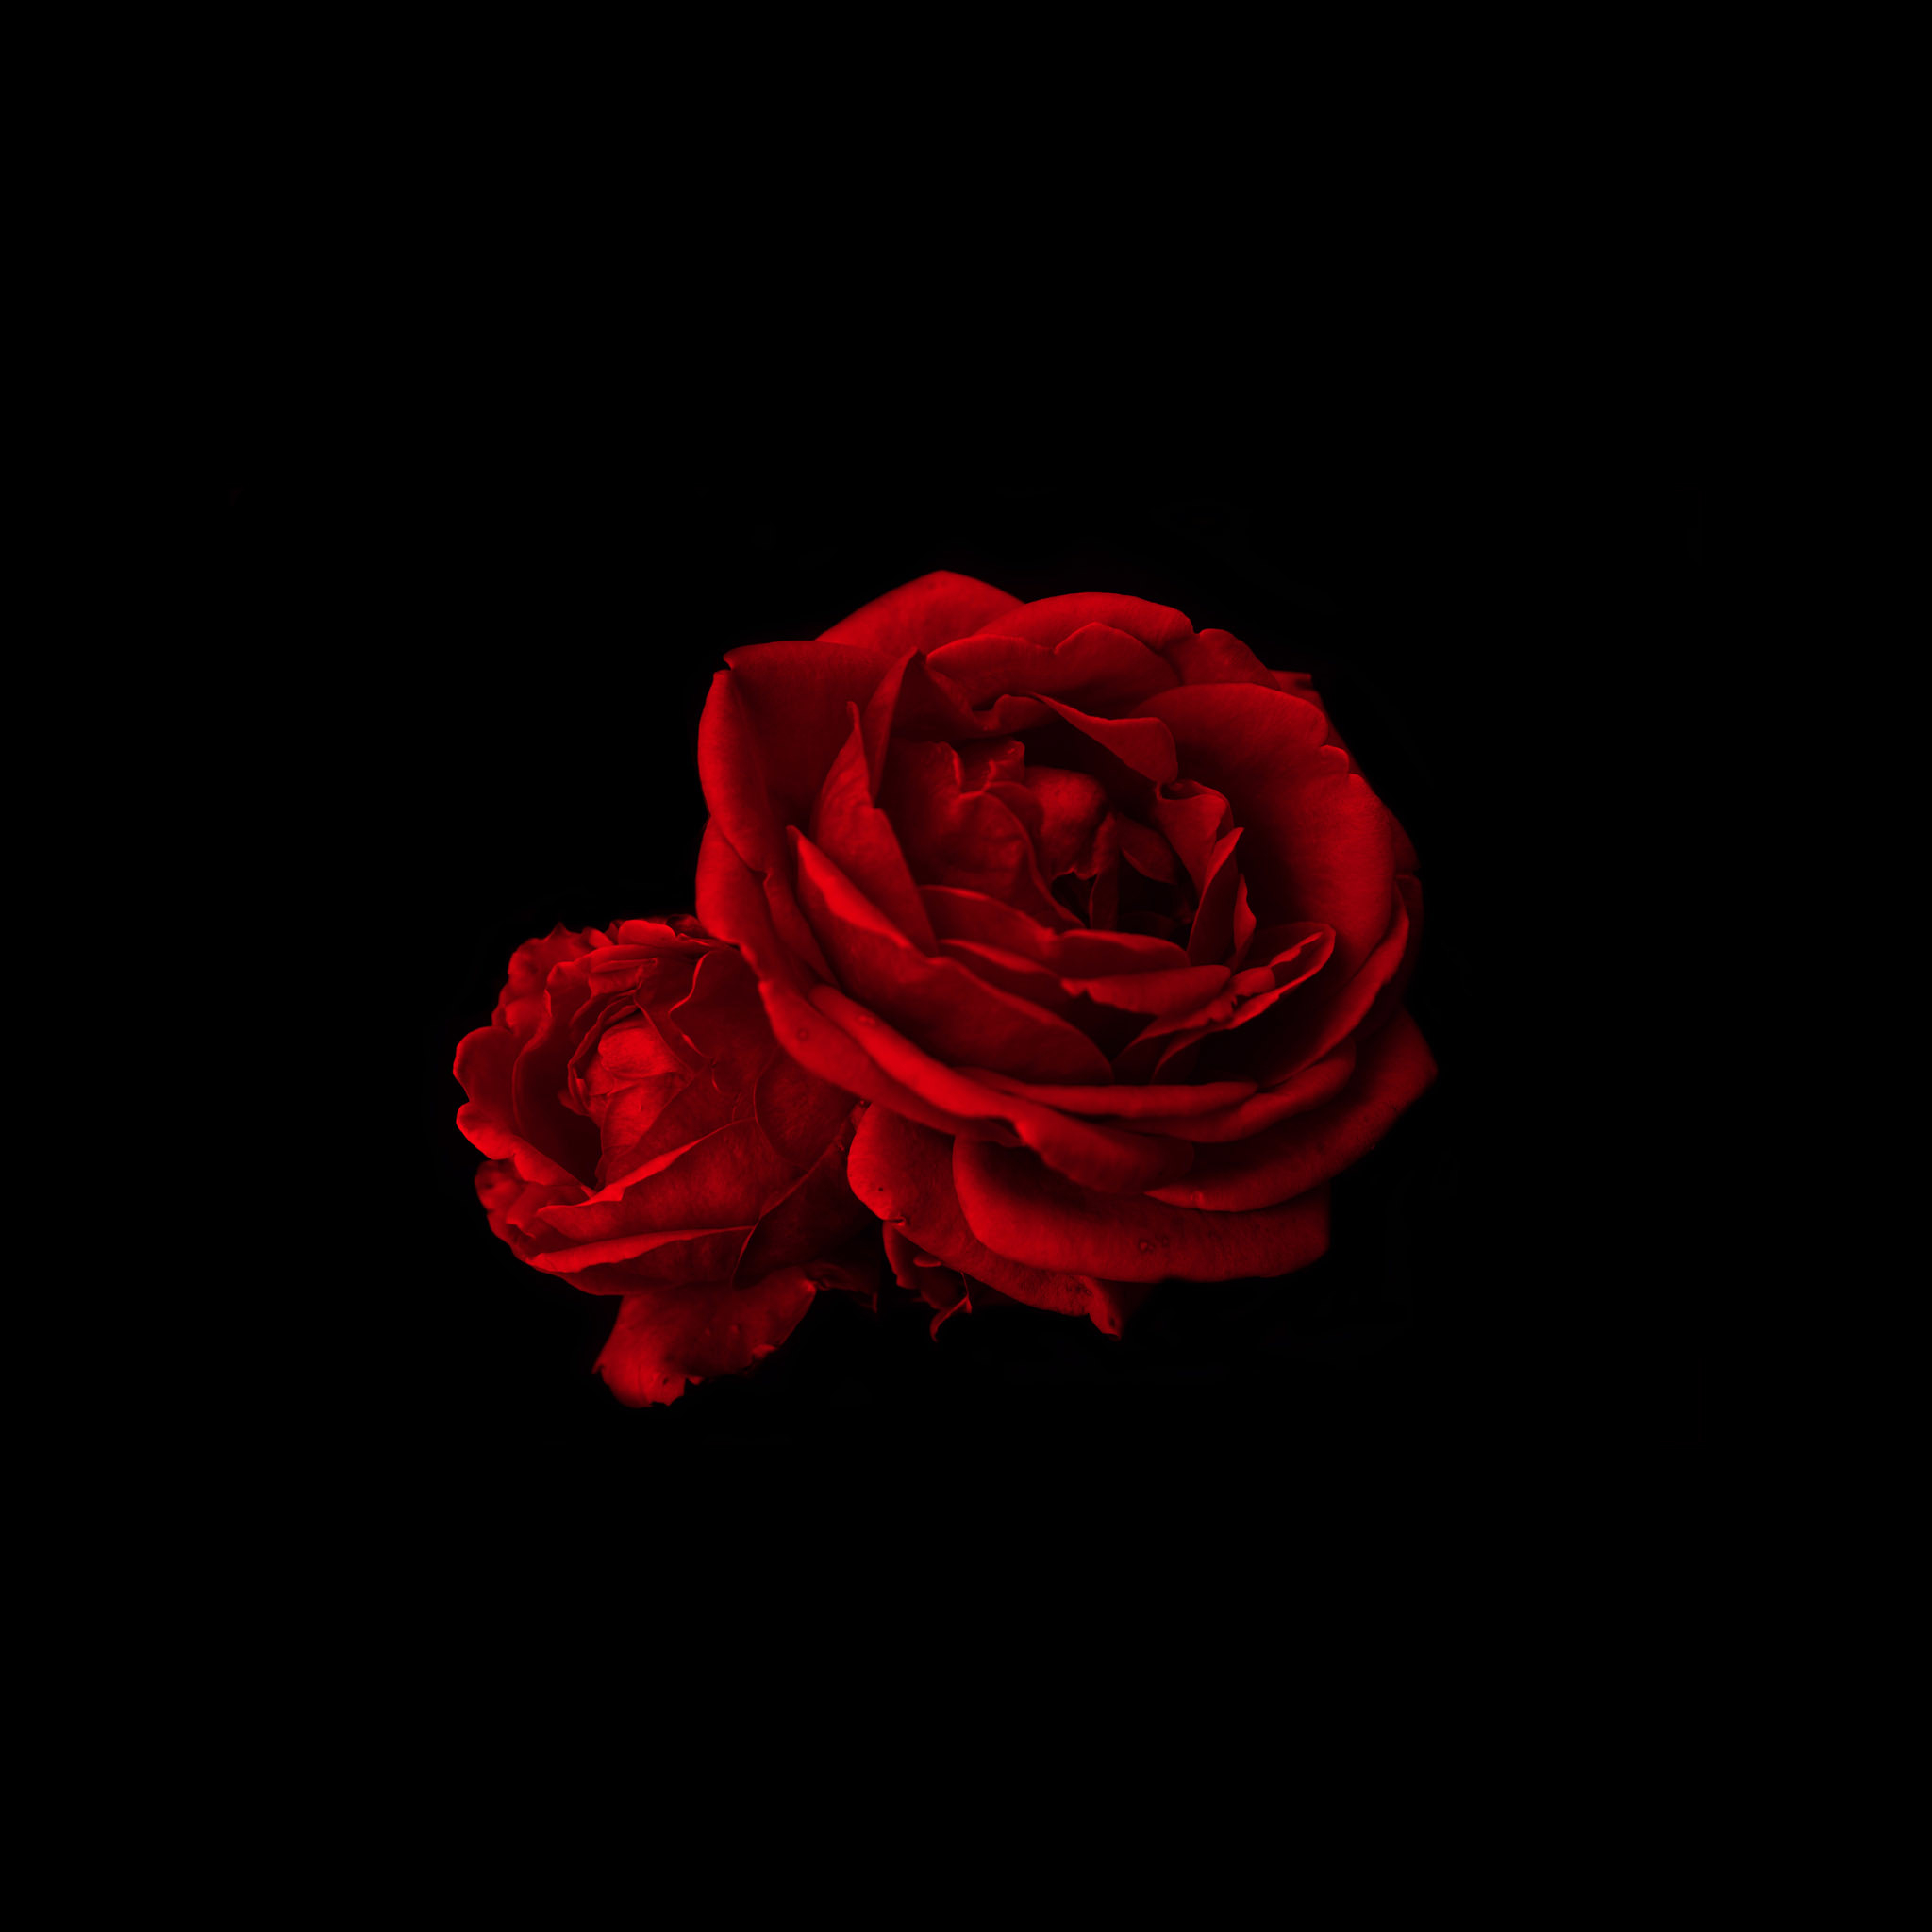 red rose iphone wallpaper 2048x2048 for hd